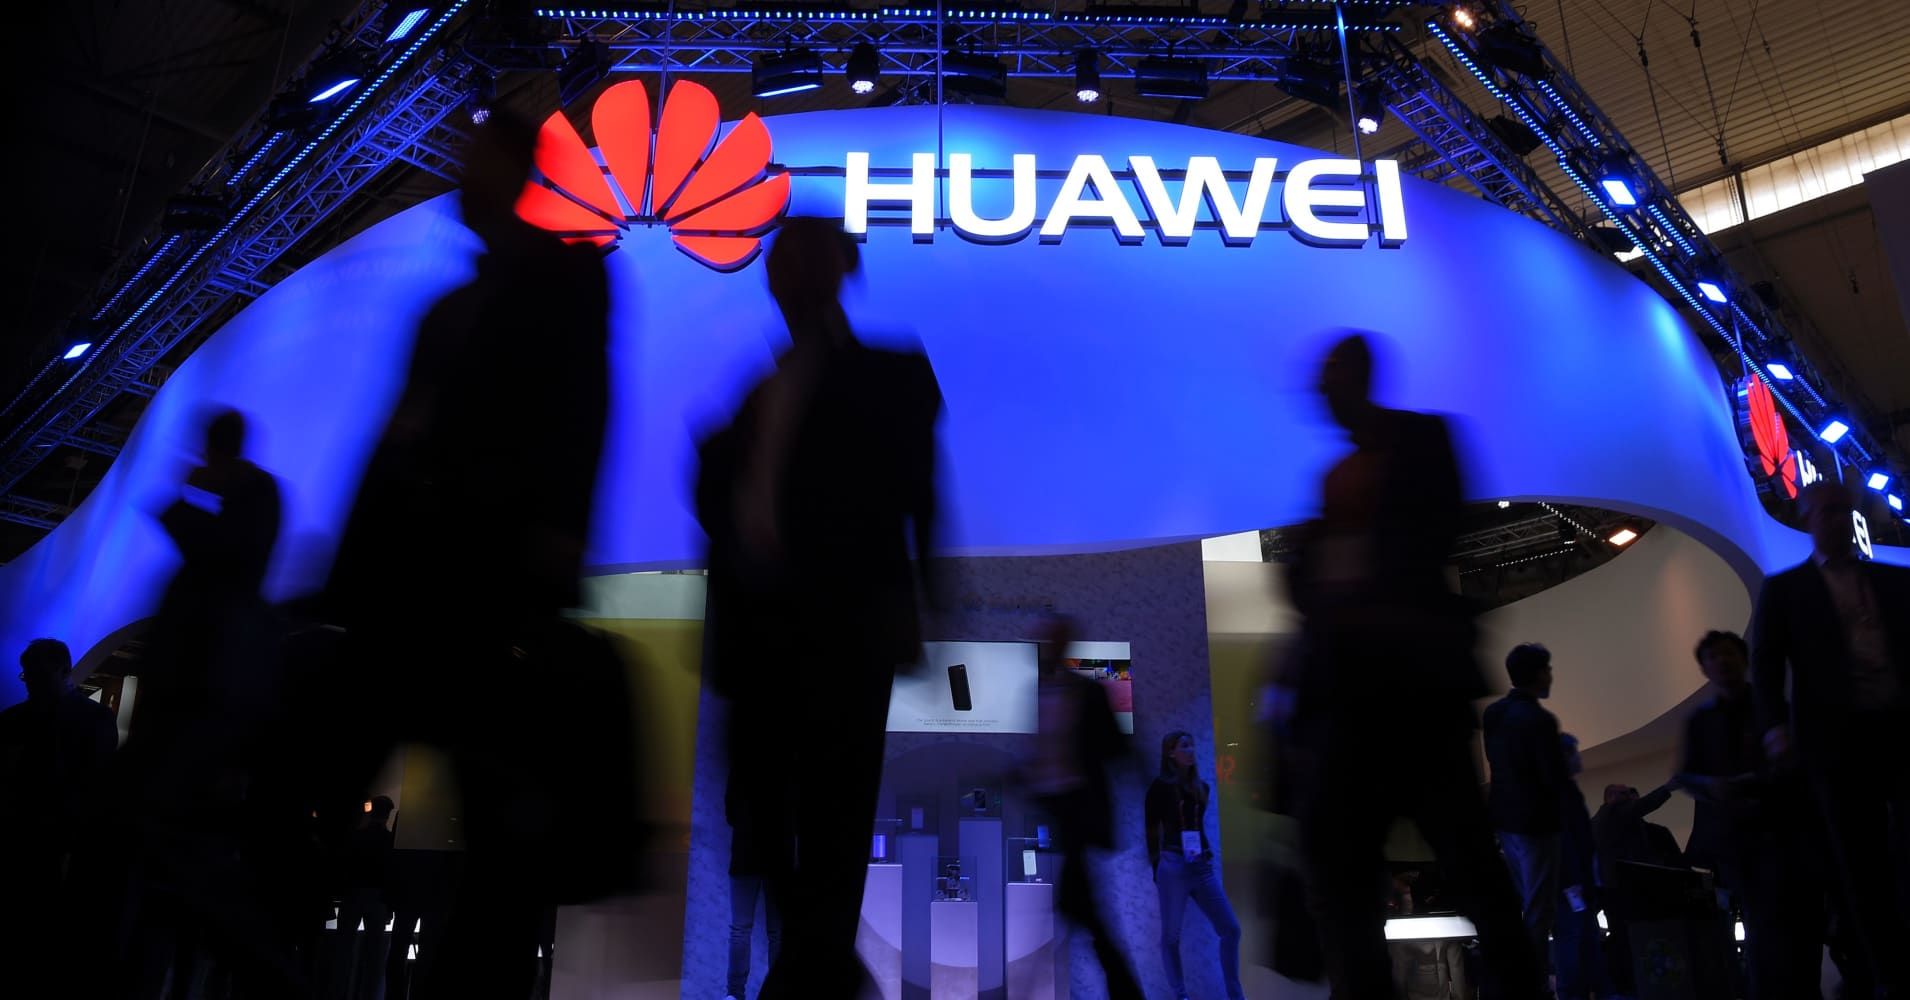 Huawei says its first-quarter revenue jumped 39% despite political pressure